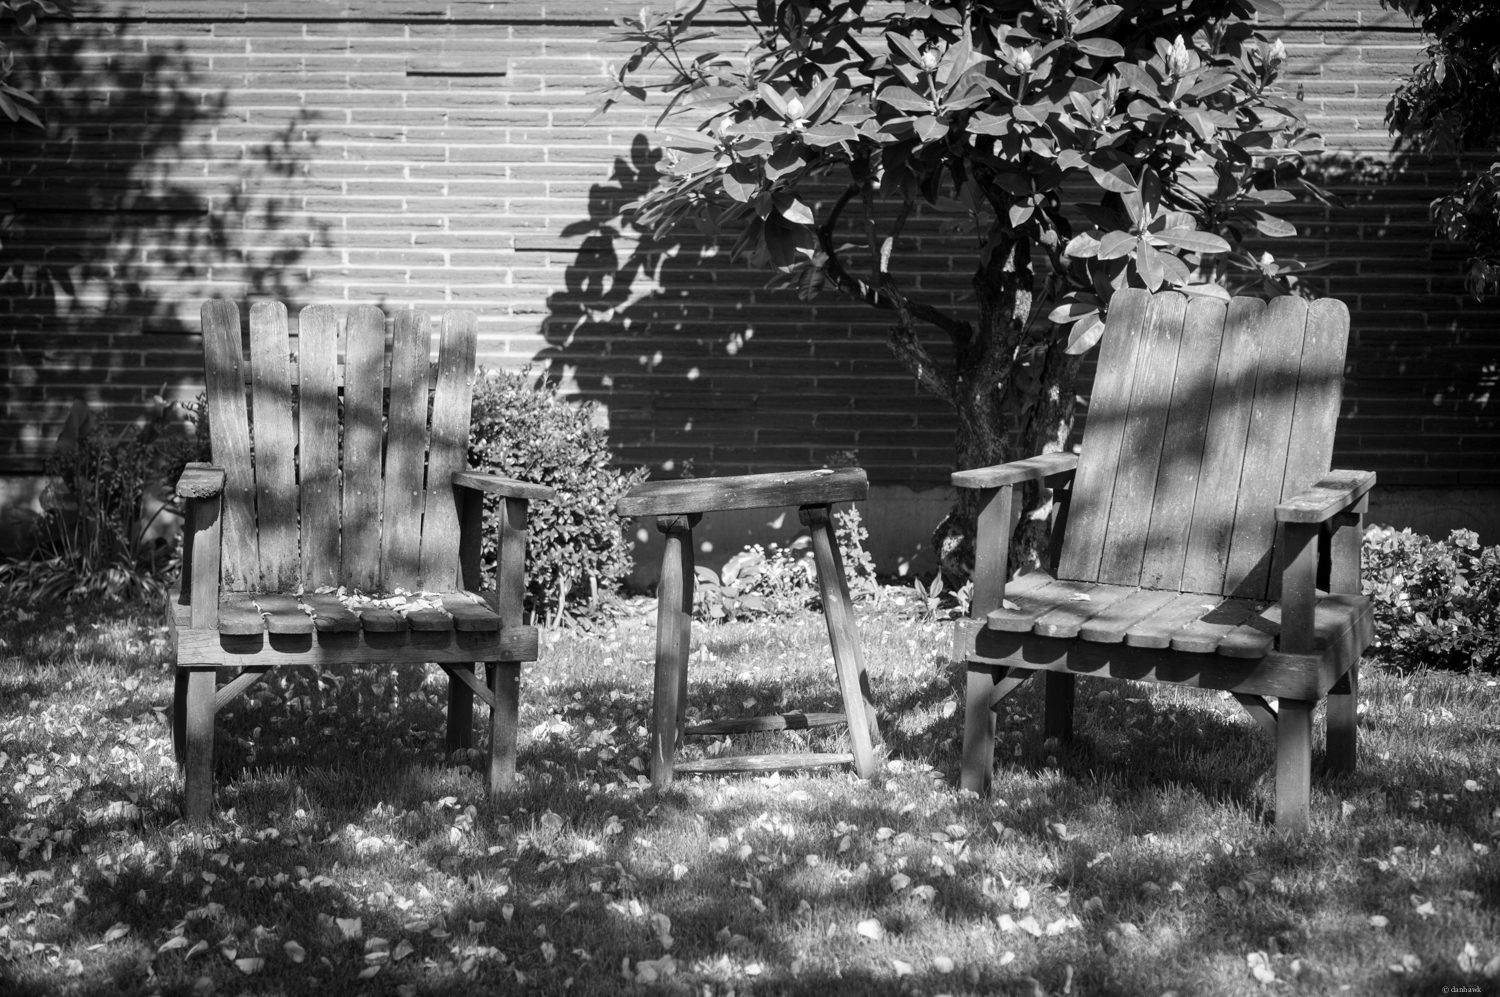 Two Old Chairs | 365 Project | May 9th, 2013 | 35mm, f/2.5, ISO 100, 1/1000, composed in B&W, converted from RAW in Lightroom